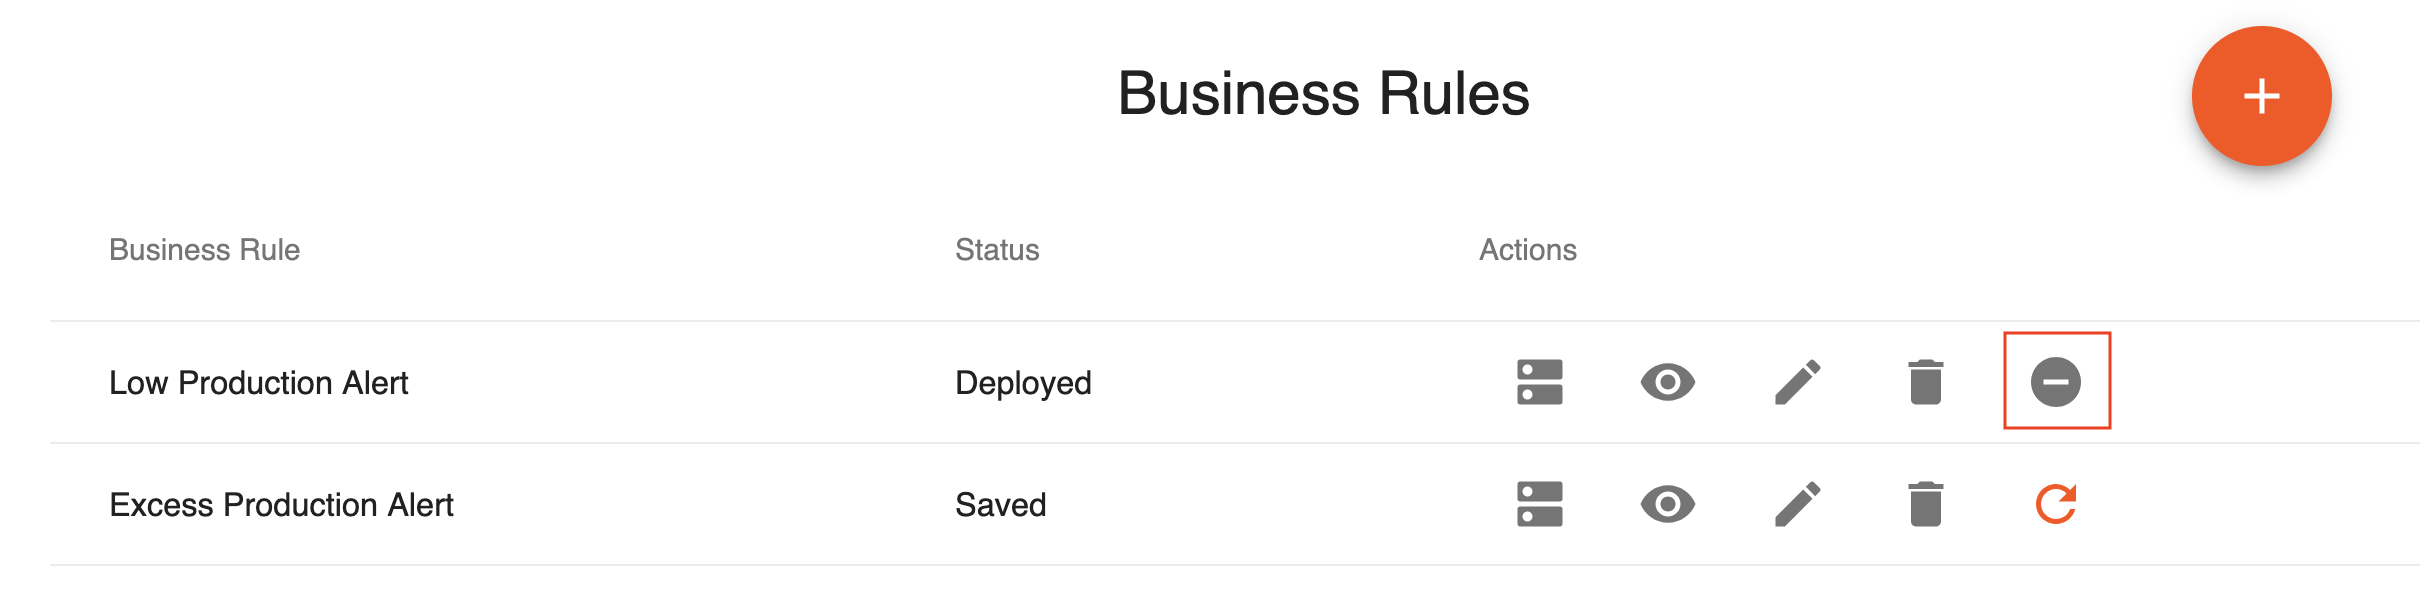 Undeploy Business Rule